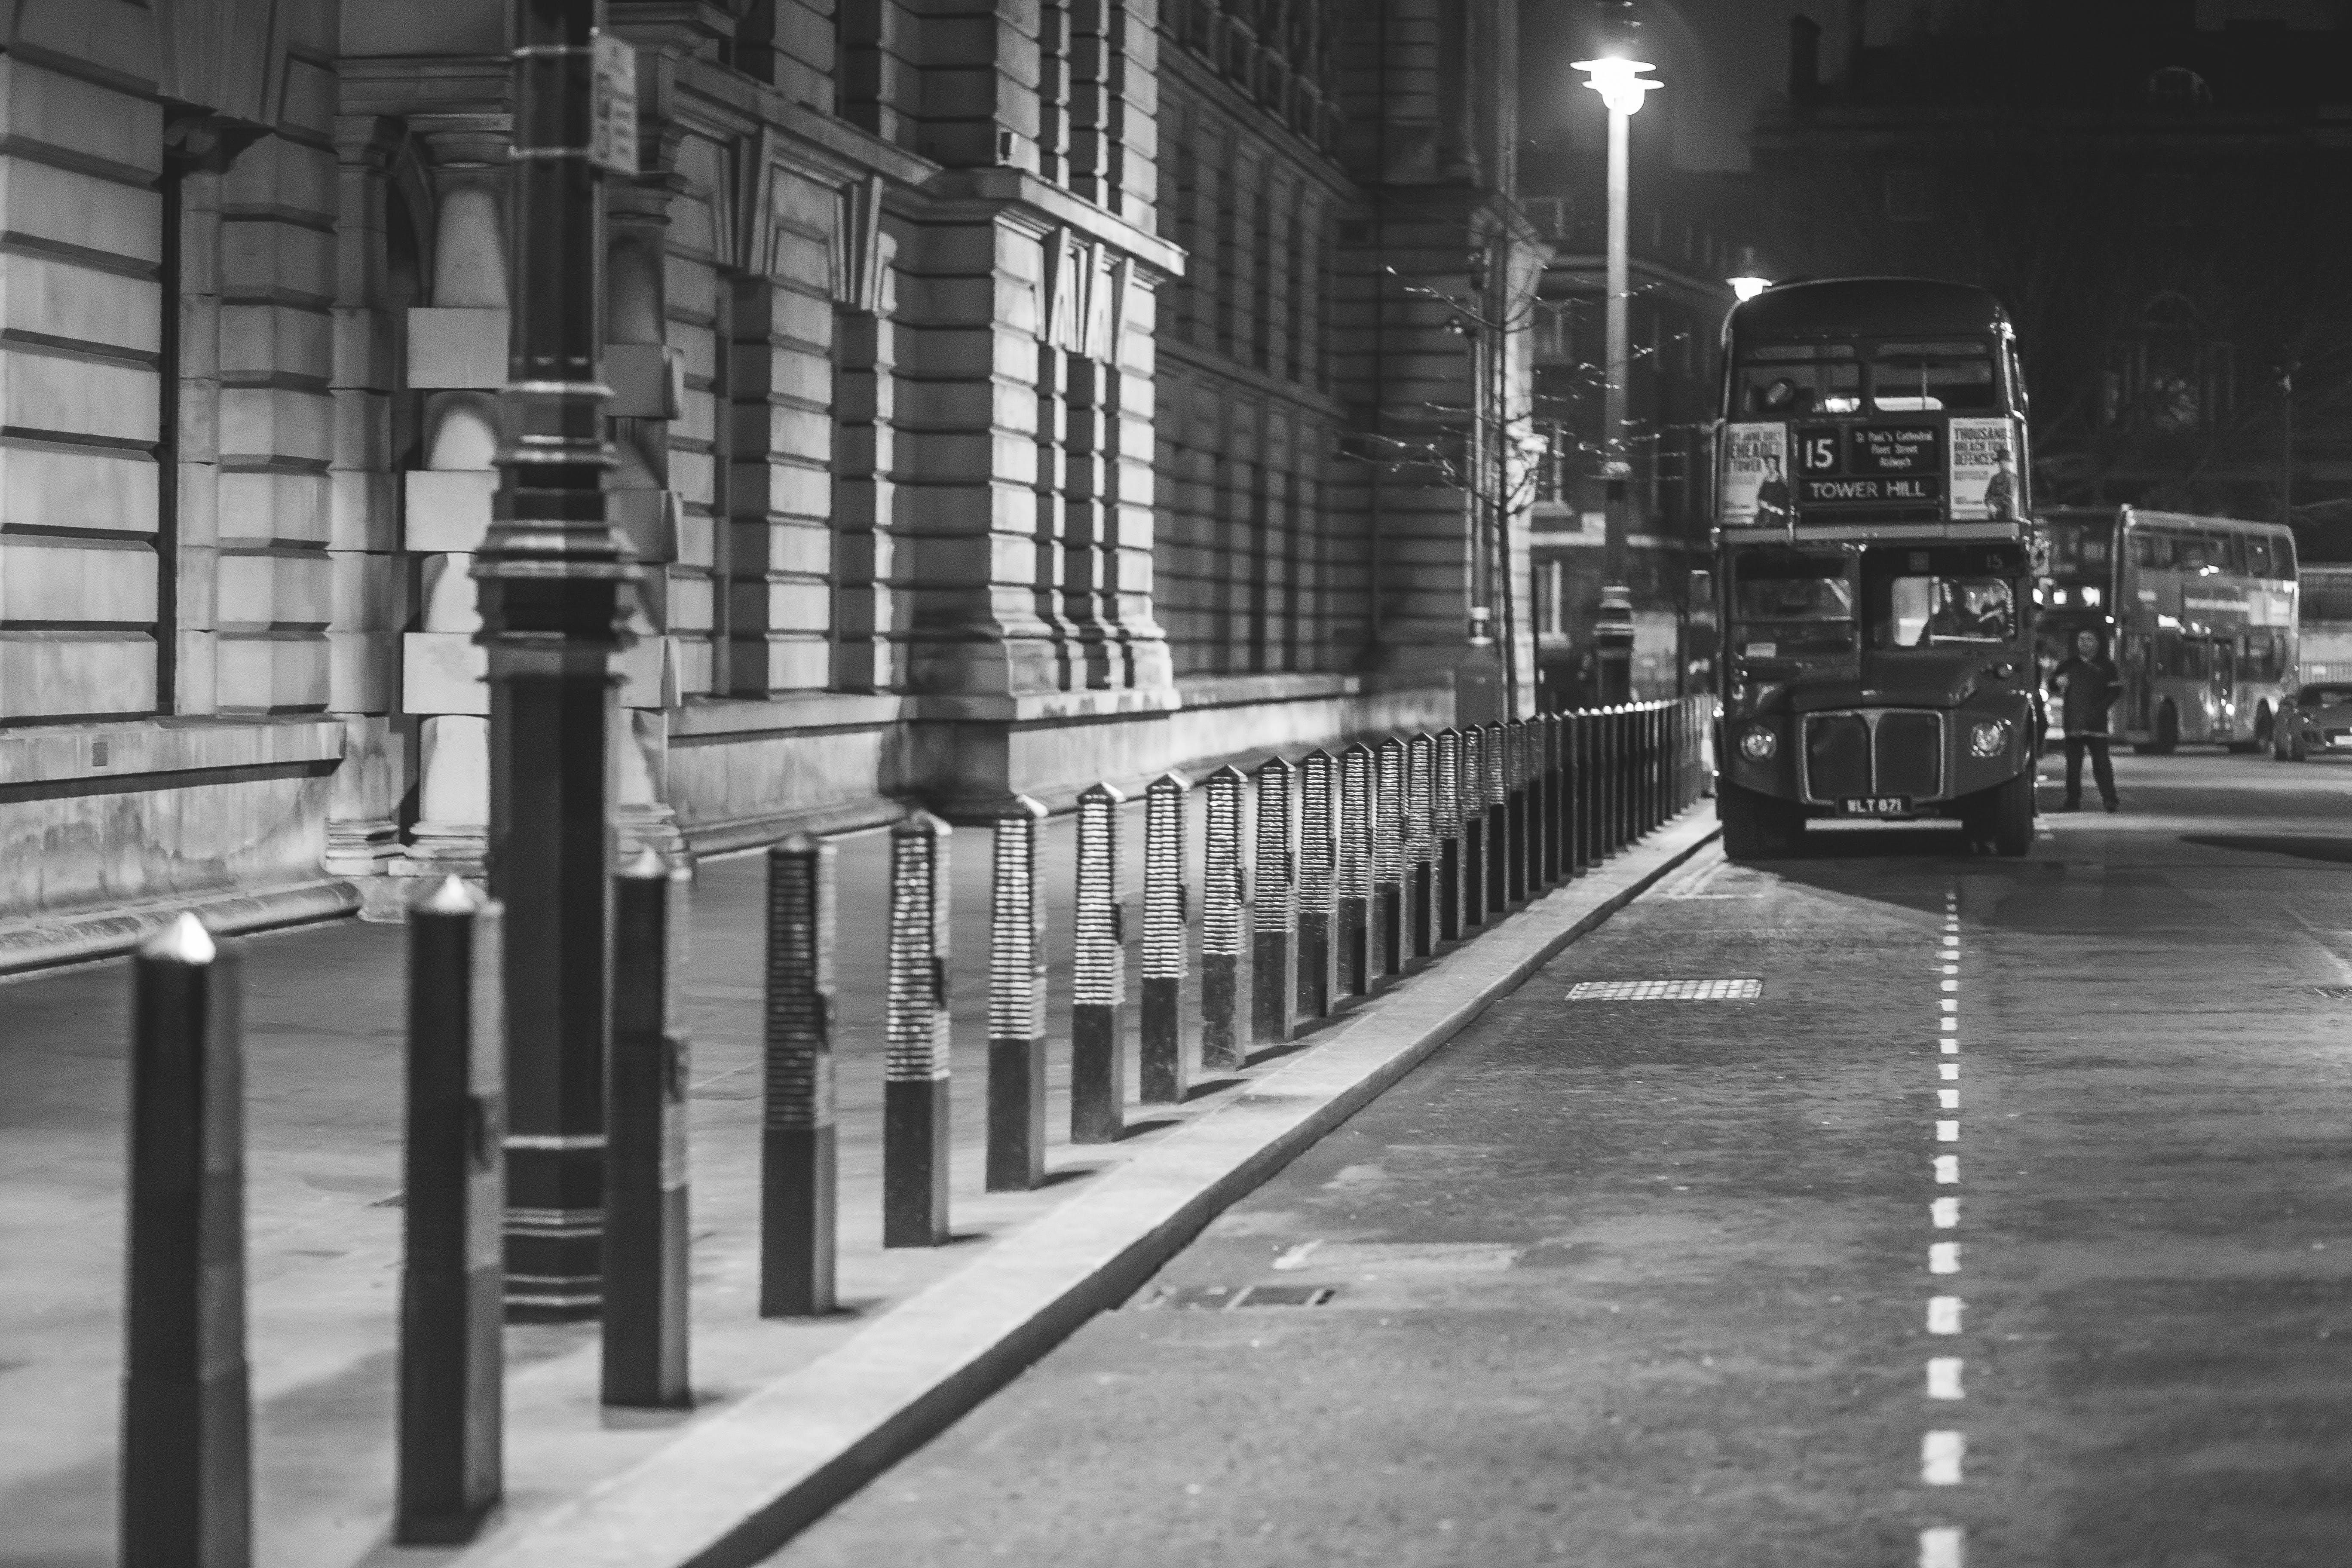 black-and-white, city, double-decker bus